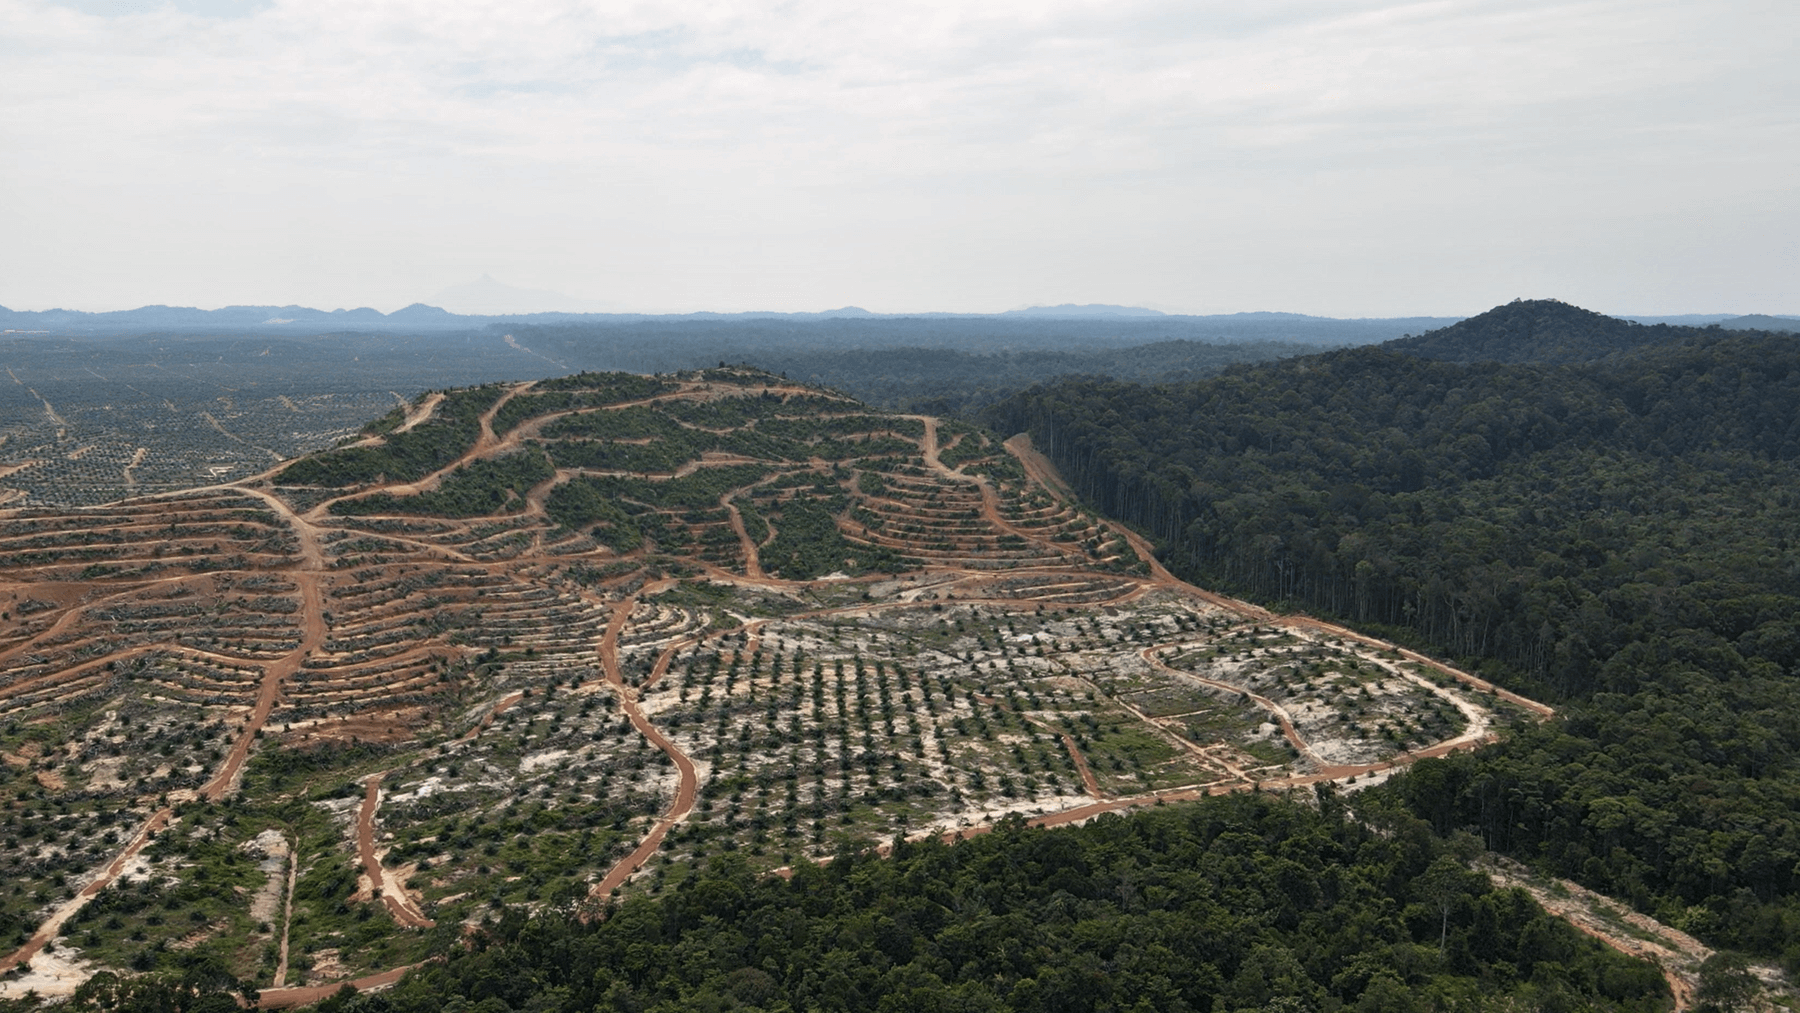 Forest cleared for oil palm plantation in Jemaluang, Johor (Macaranga)